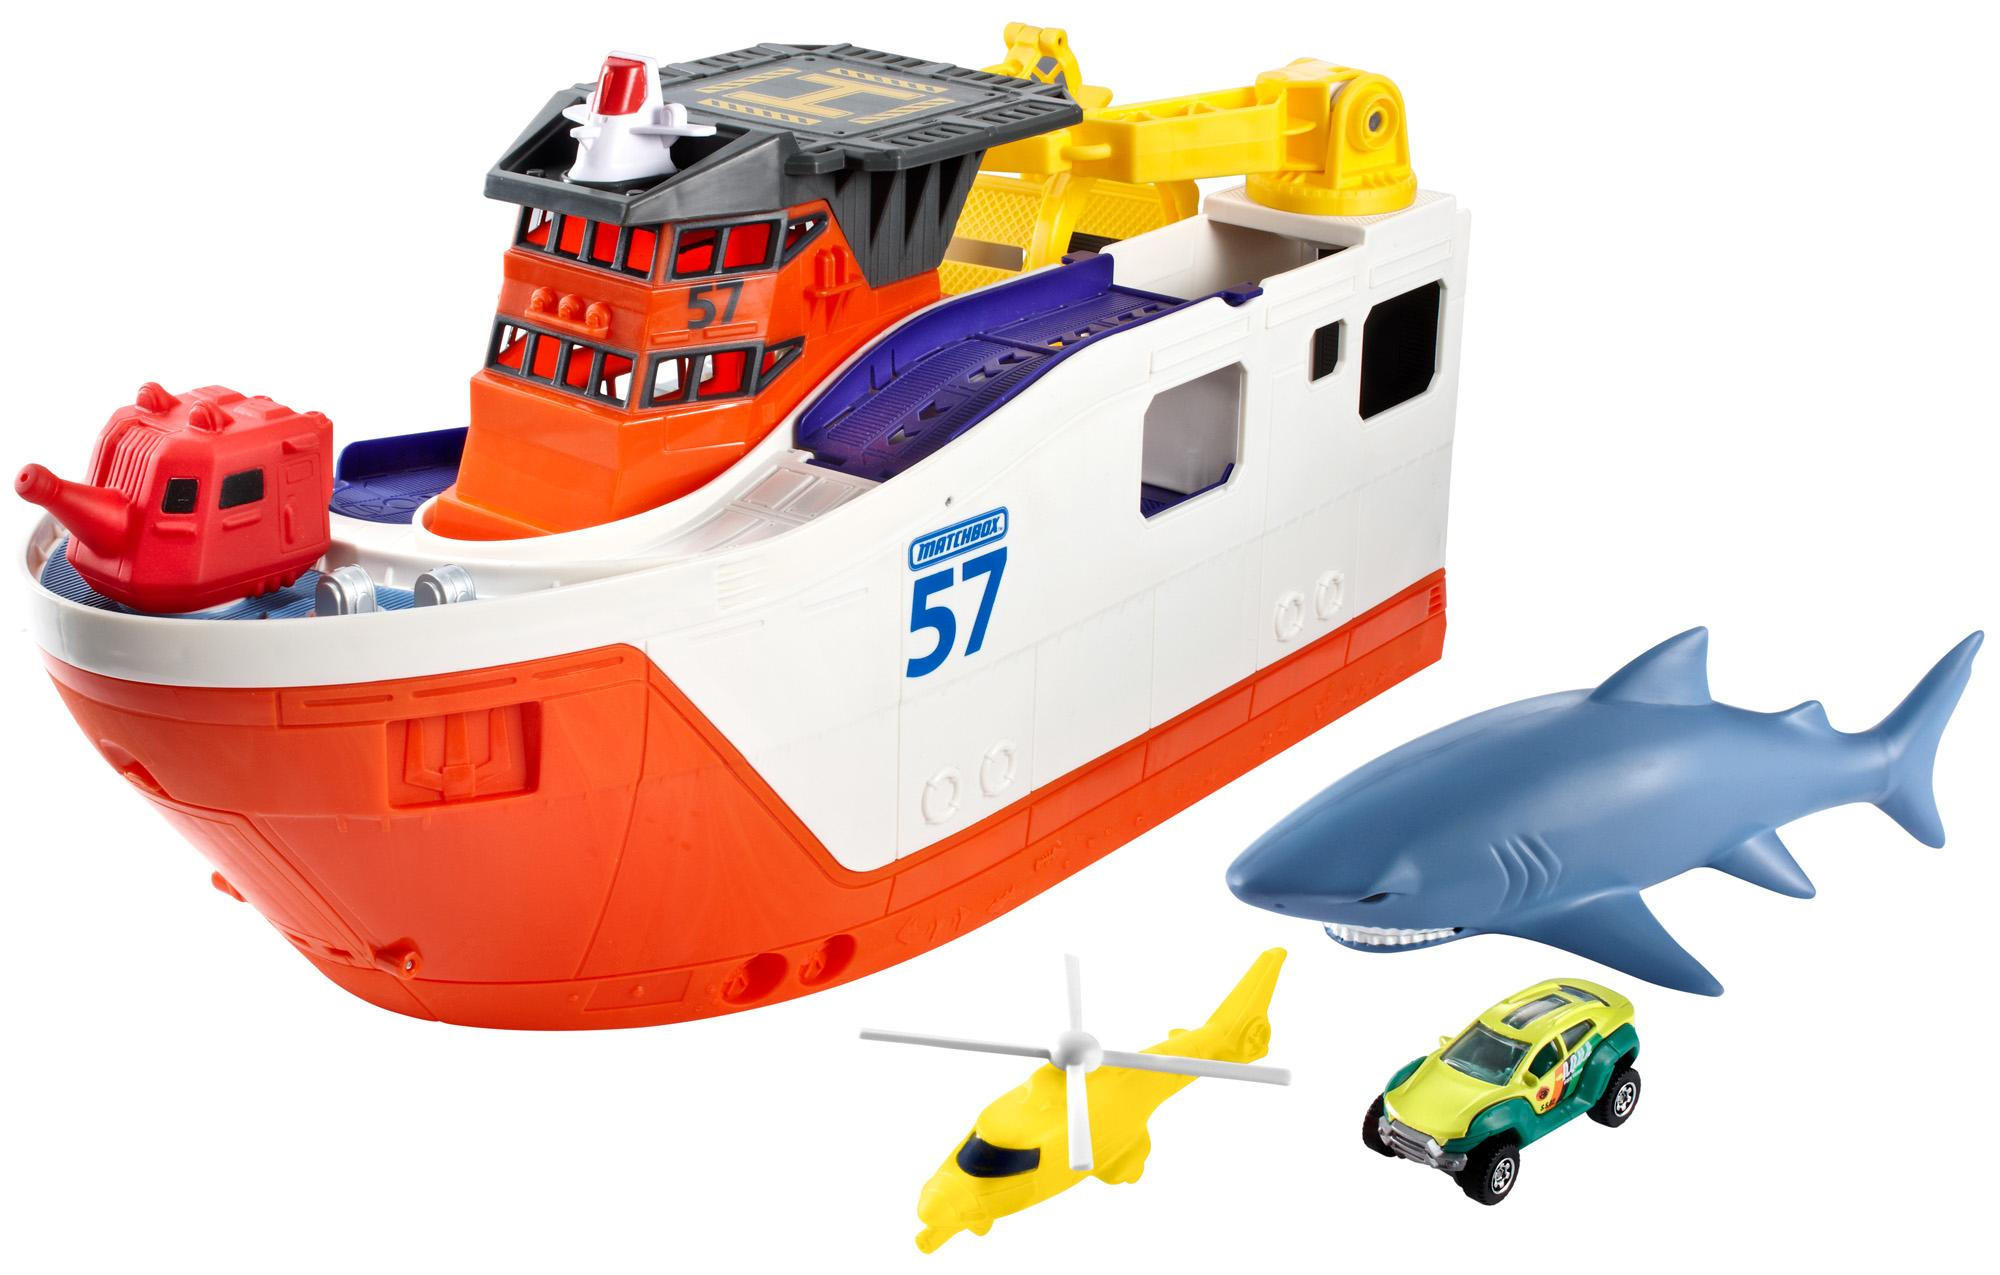 Shark Ship Toy : Matchbox mission marine rescue shark ship ebay